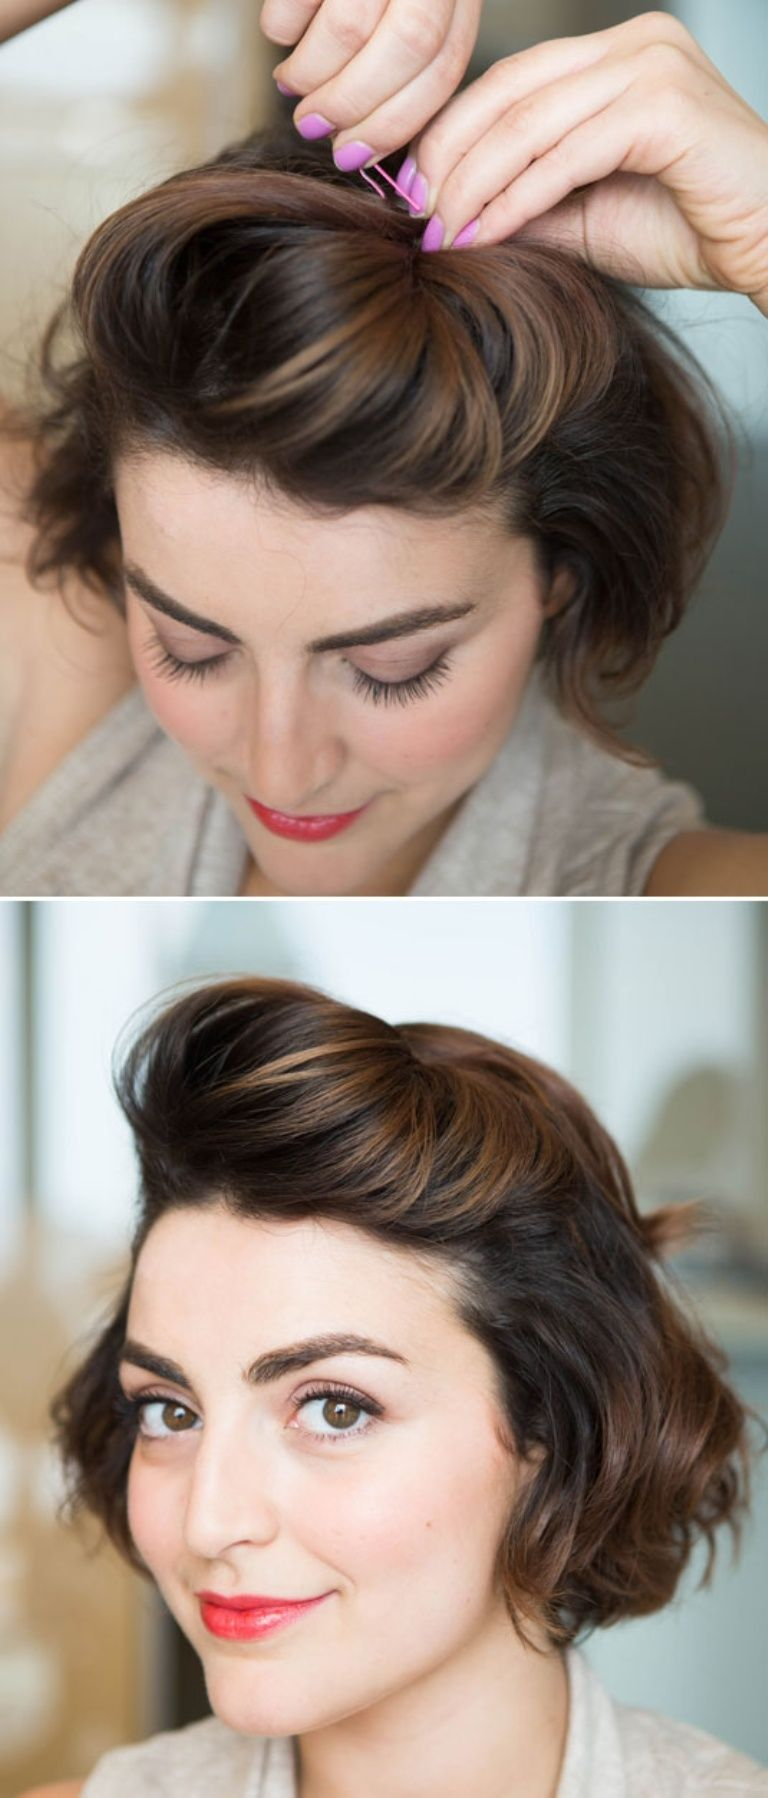 hairstyles for short hair cute short hairstyles and styling